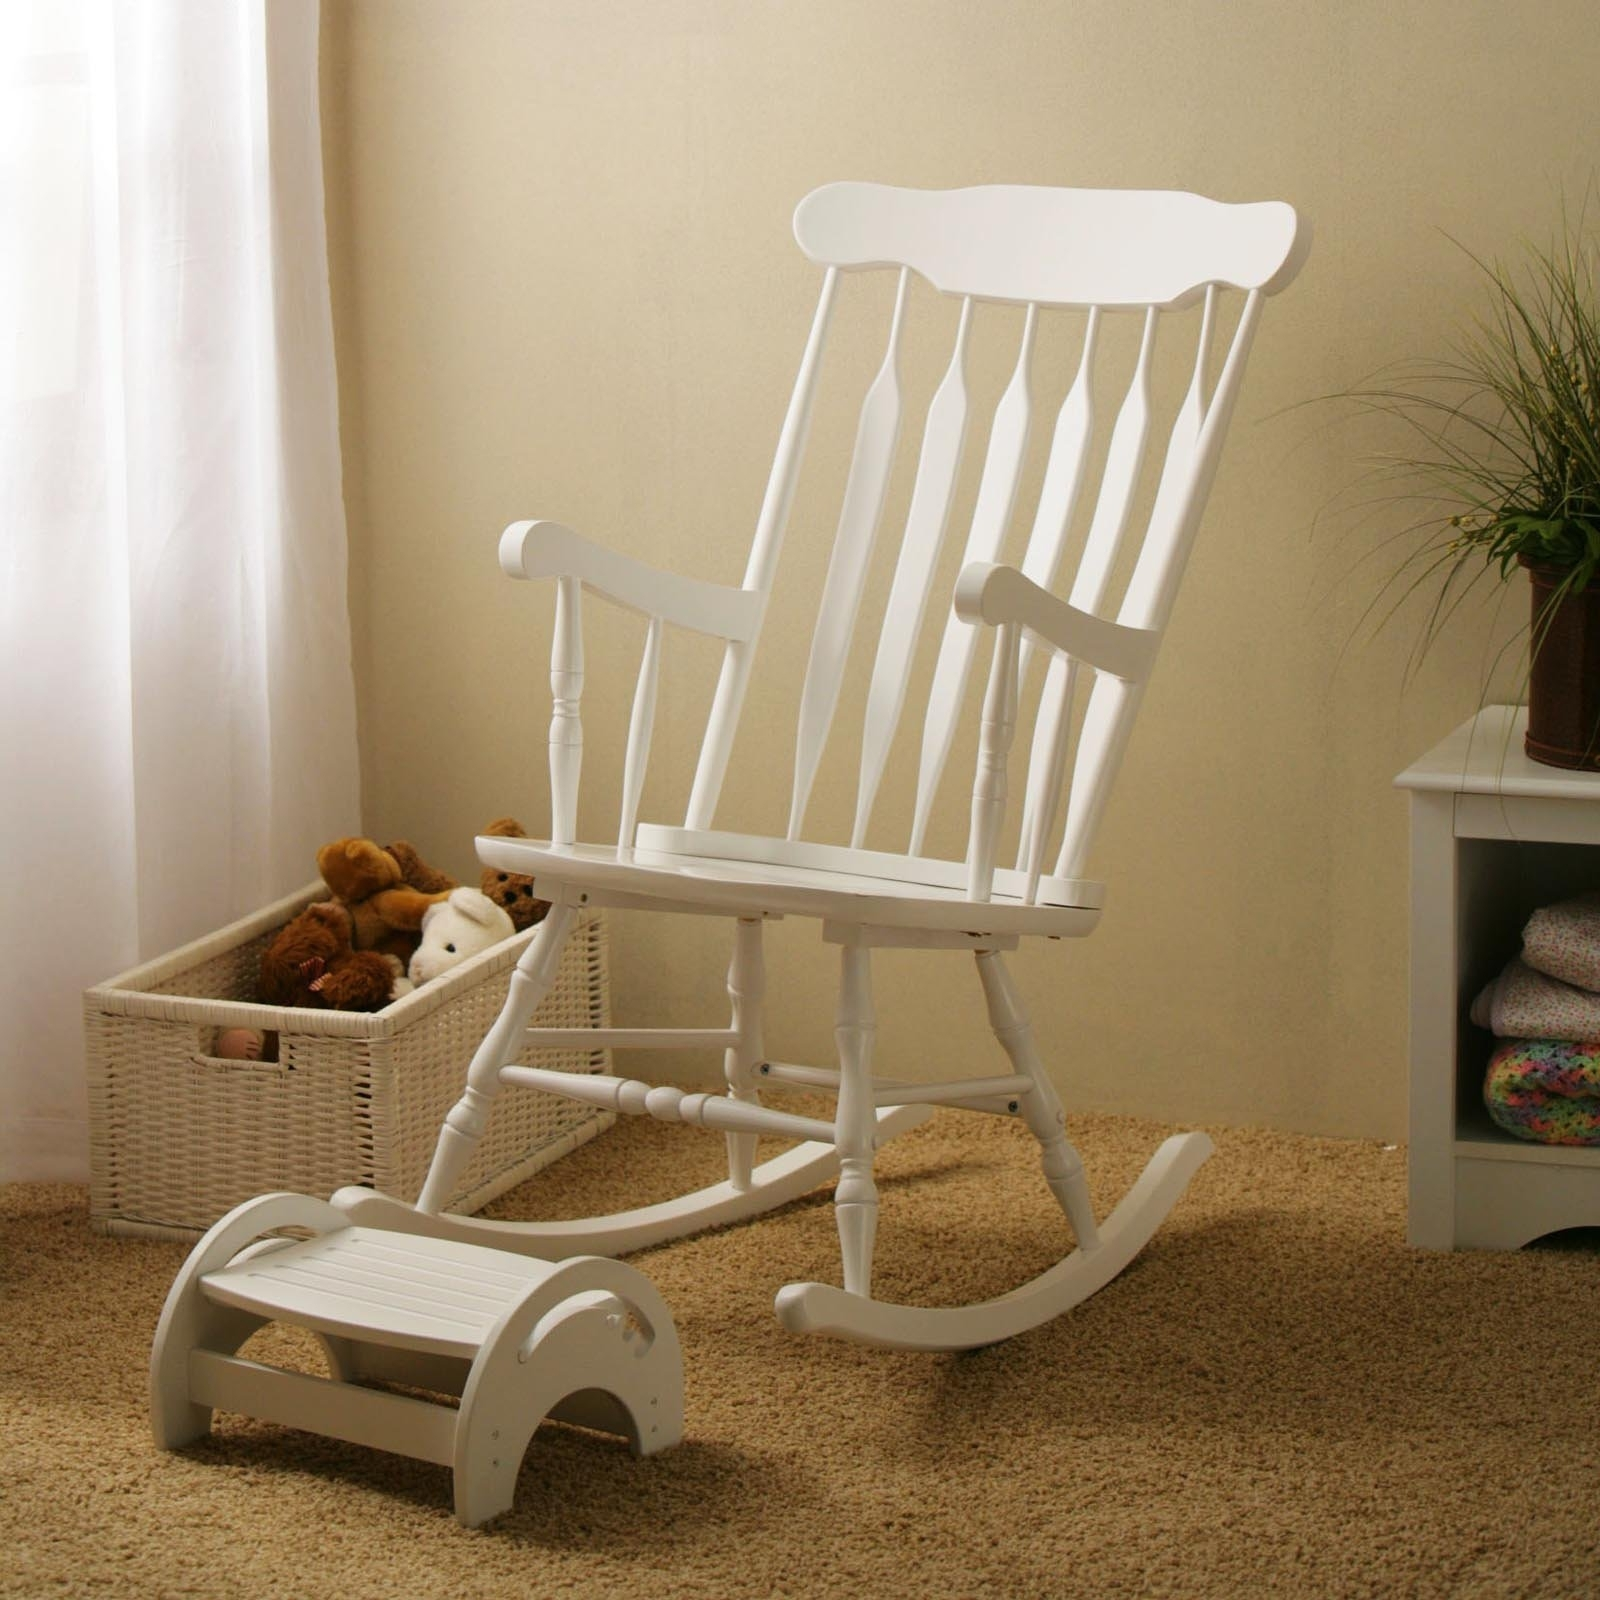 Rocking Chair With Footrest – Kevinjohnsonformayor Intended For Most Current Rocking Chairs With Footrest (View 9 of 20)